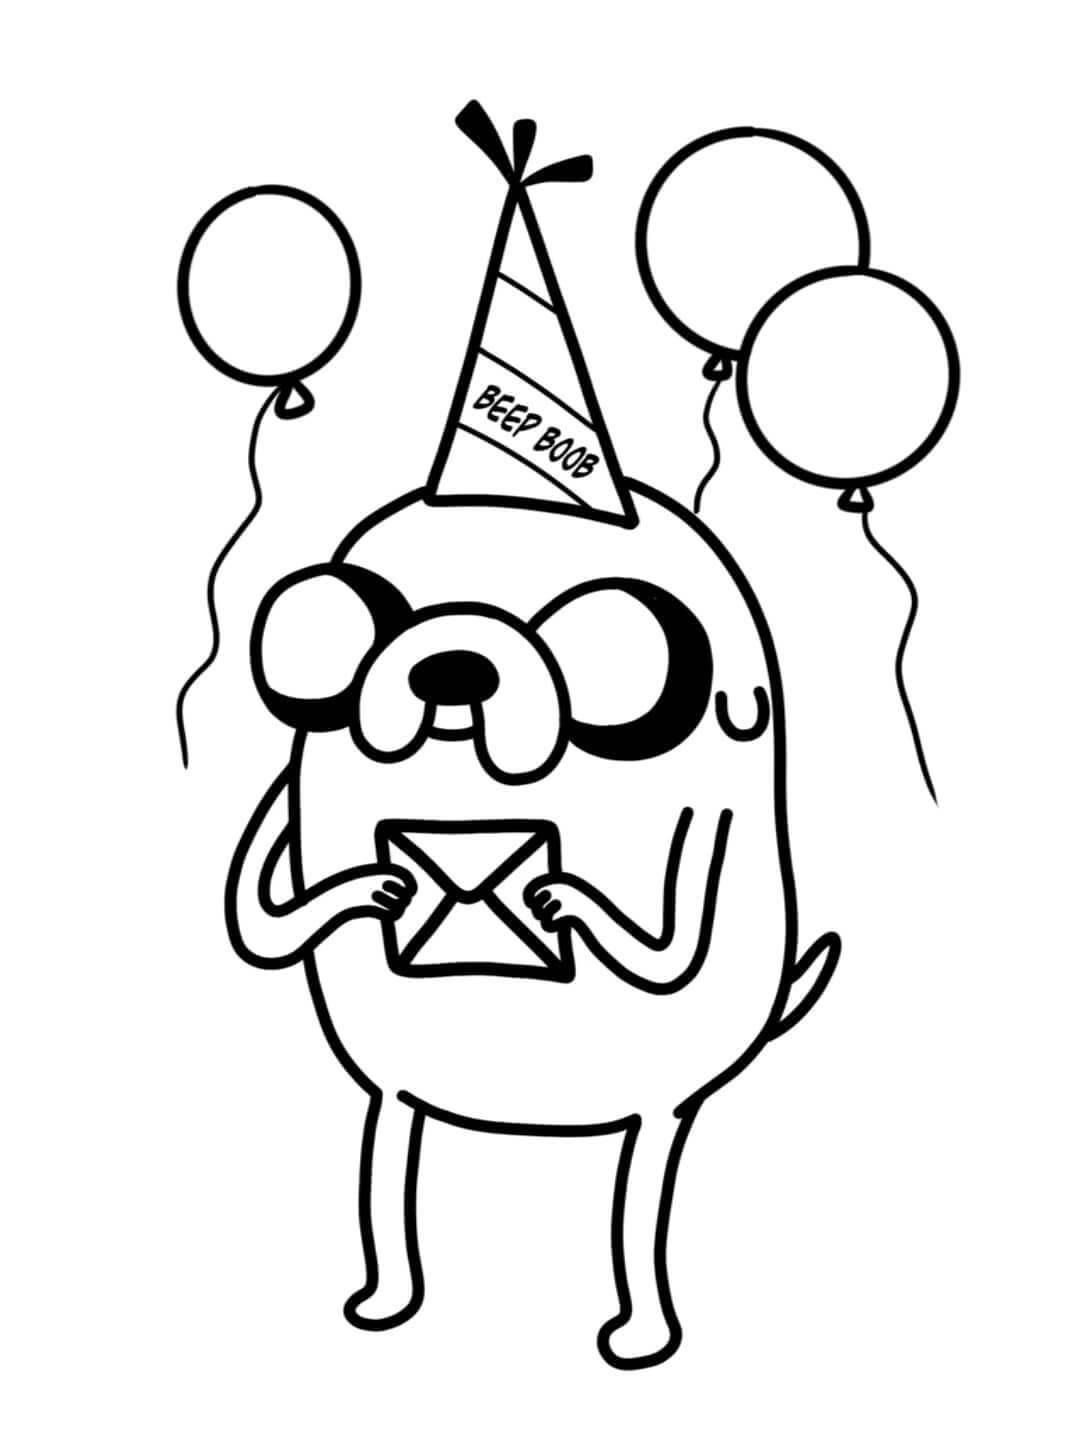 Jake the dog from Adventure Time with a party head with a funny word on it